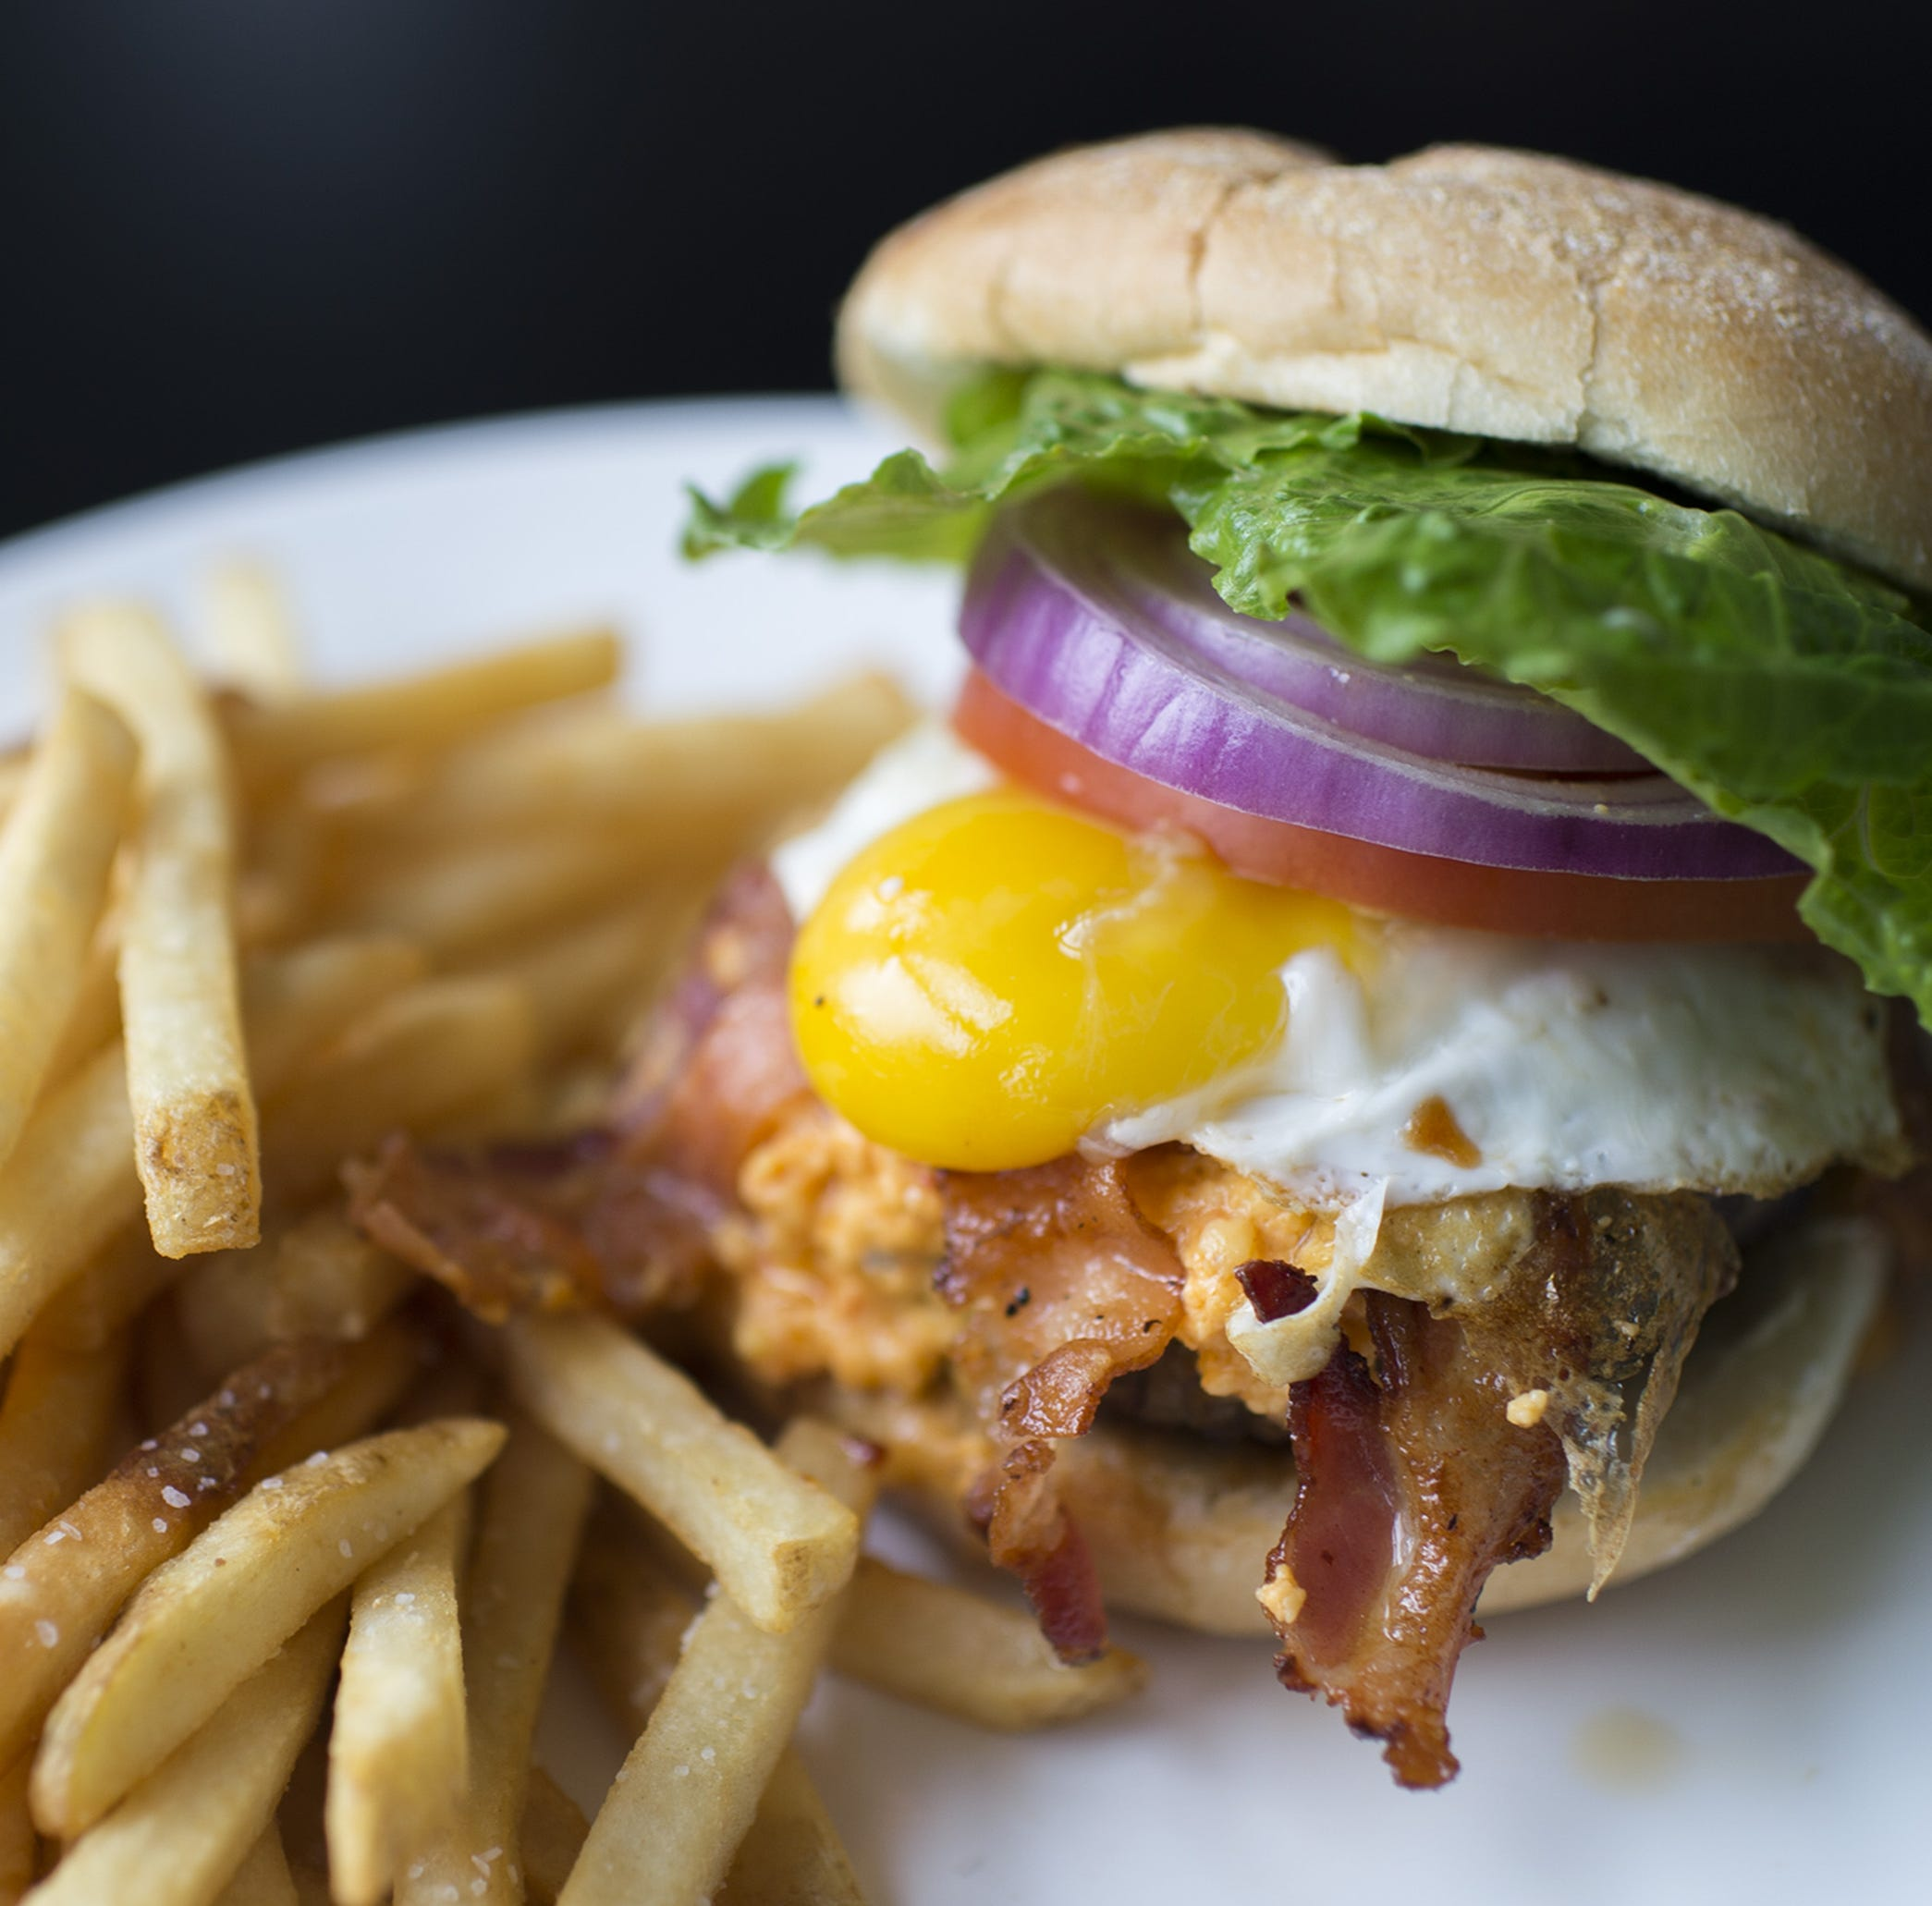 8 places to enjoy the burger of your dreams in South Jersey